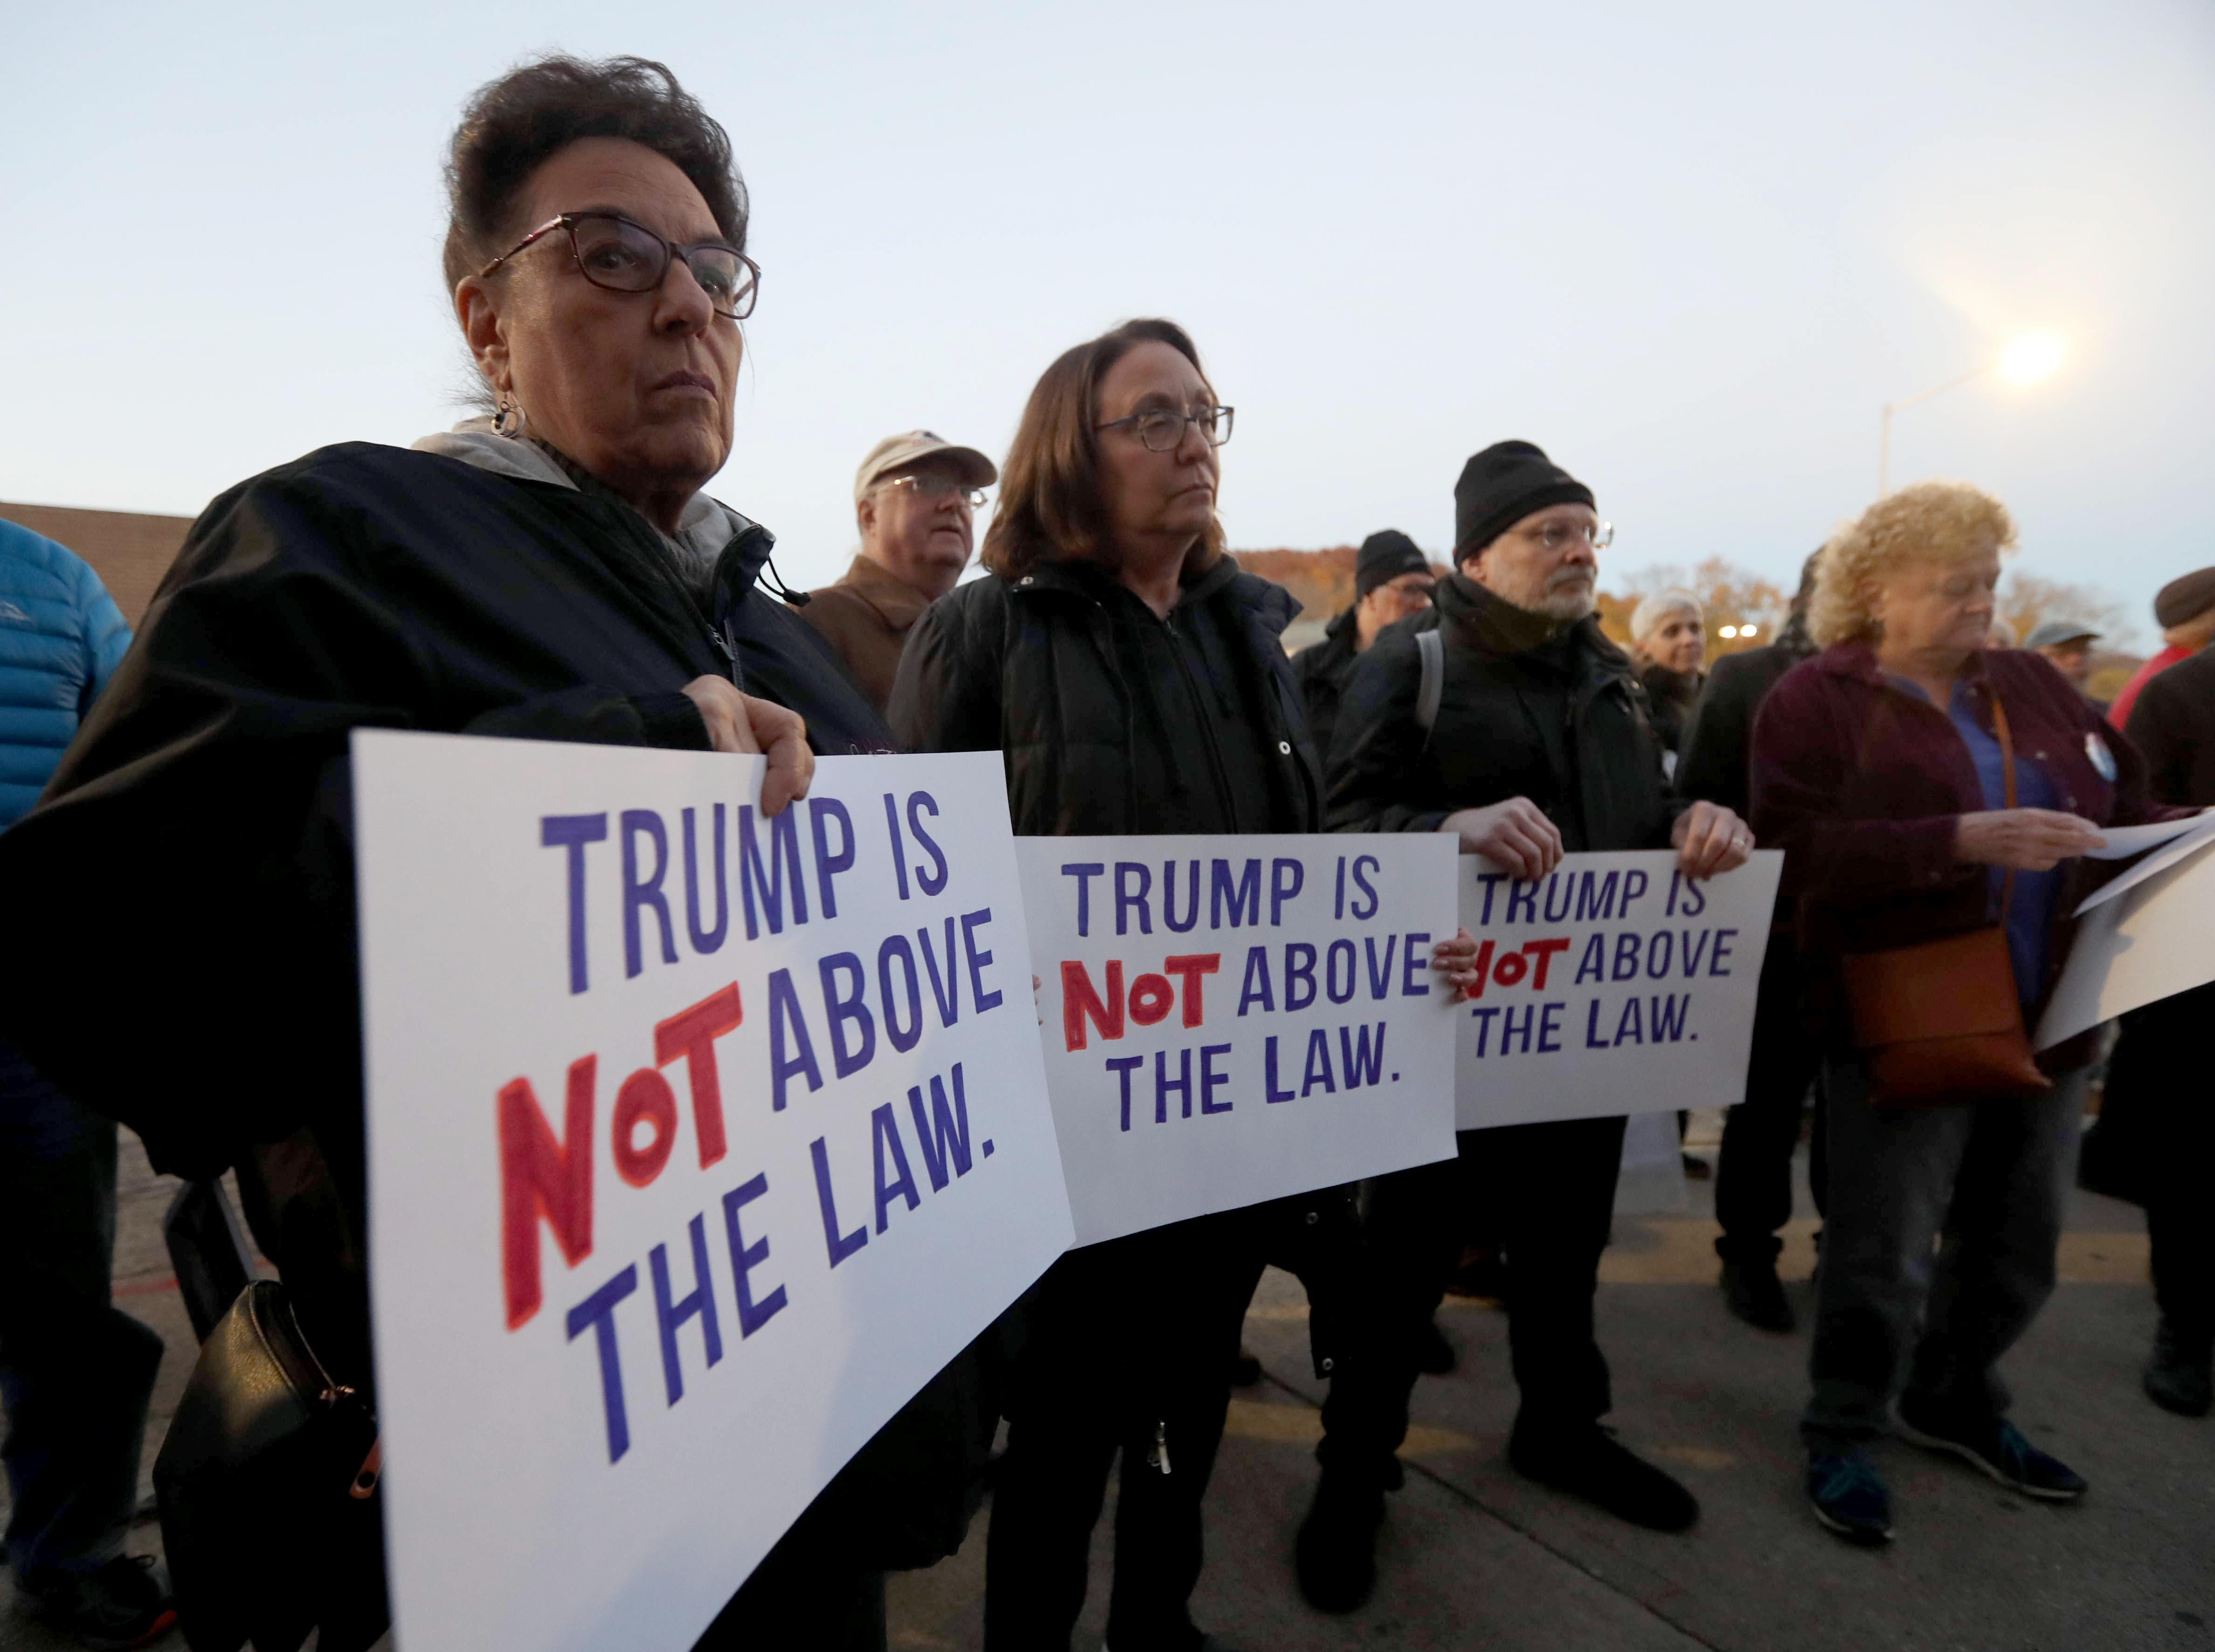 Over one-hundred people attended a rally in front of Senator Chuck Schumer's local office in Peekskill, N.Y. calling for the protection of the Robert Mueller's investigation Nov. 8, 2018. The protest, which coincided with similar protests across the nation, came in the wake of President Trump's firing of Attorney General Jeff Sessions.